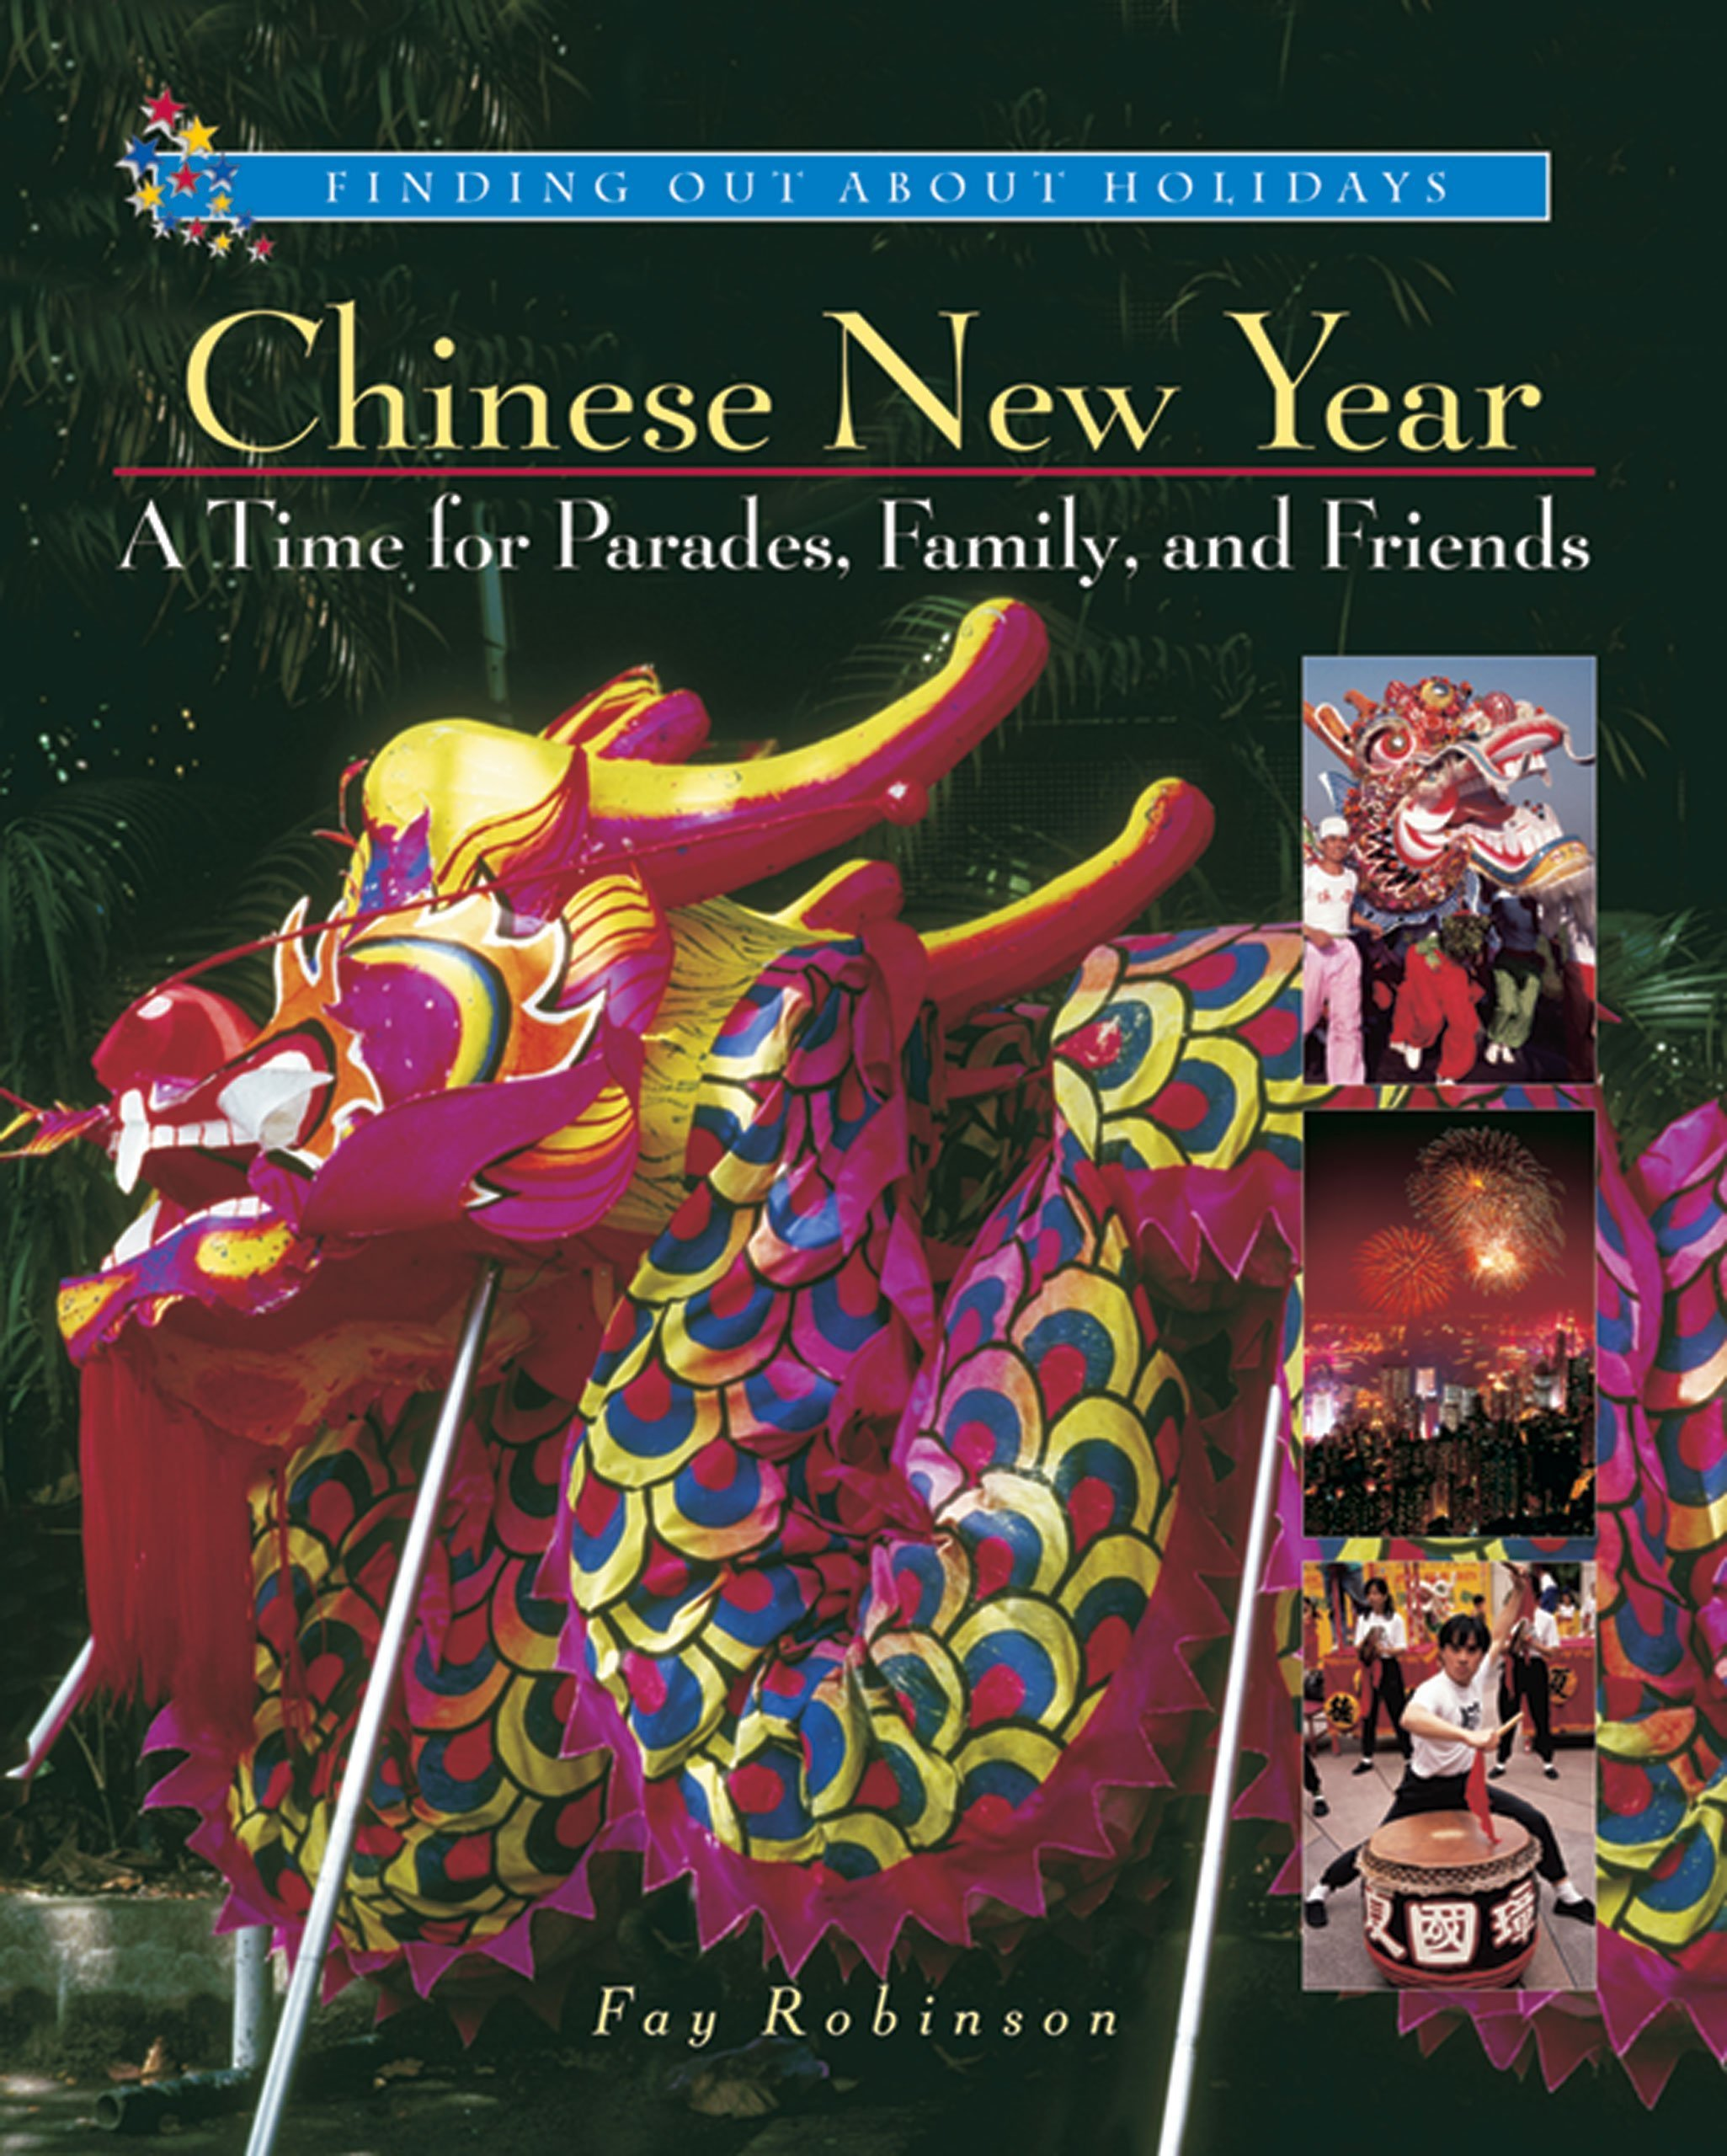 Chinese New Year: A Time for Parades, Family, and Friends (Finding Out About Holidays) PDF